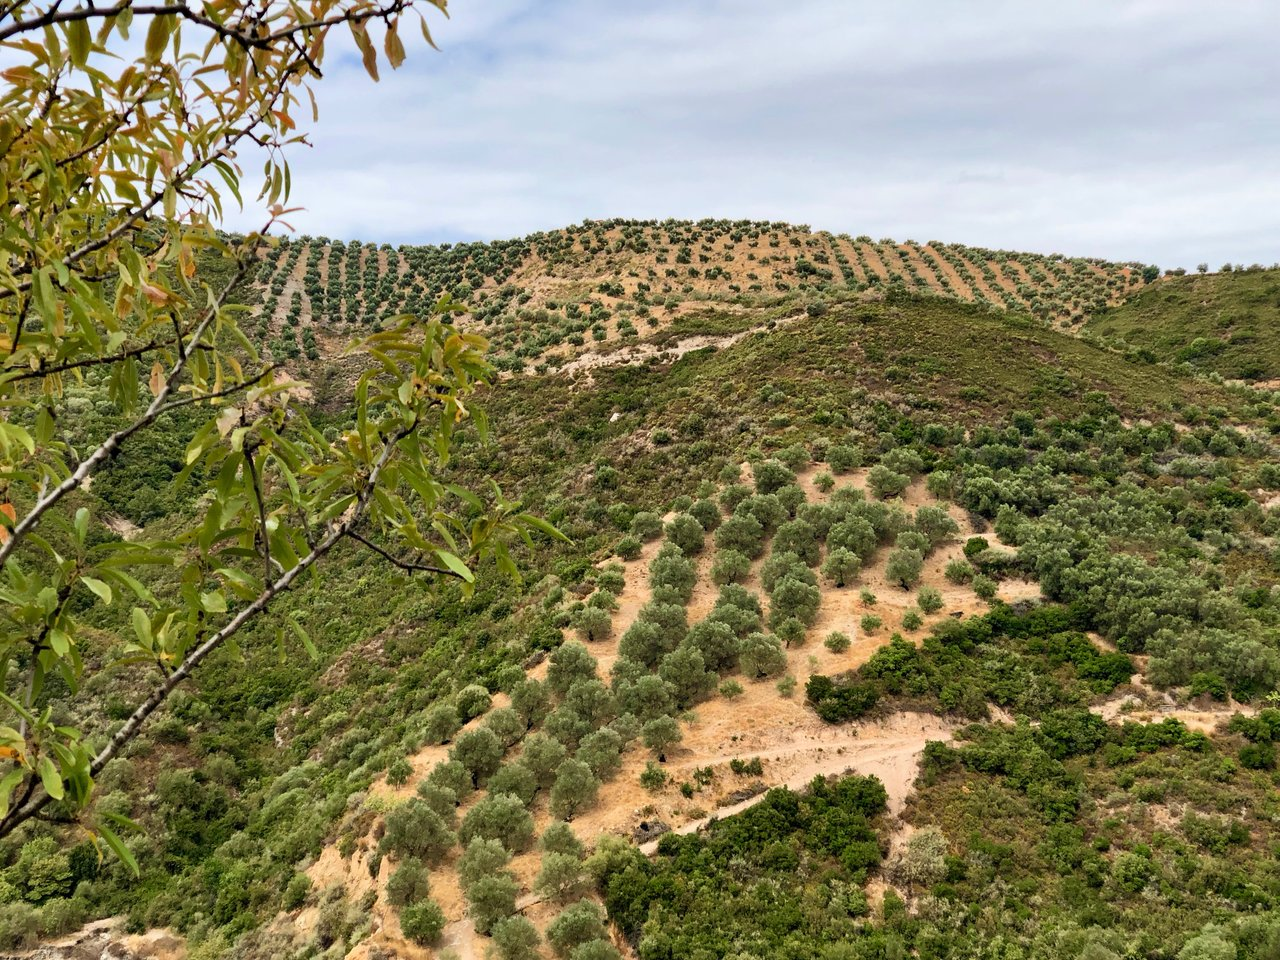 Incredible views ... olive trees, olive trees, and more olive trees | Photo taken by Rebecca R